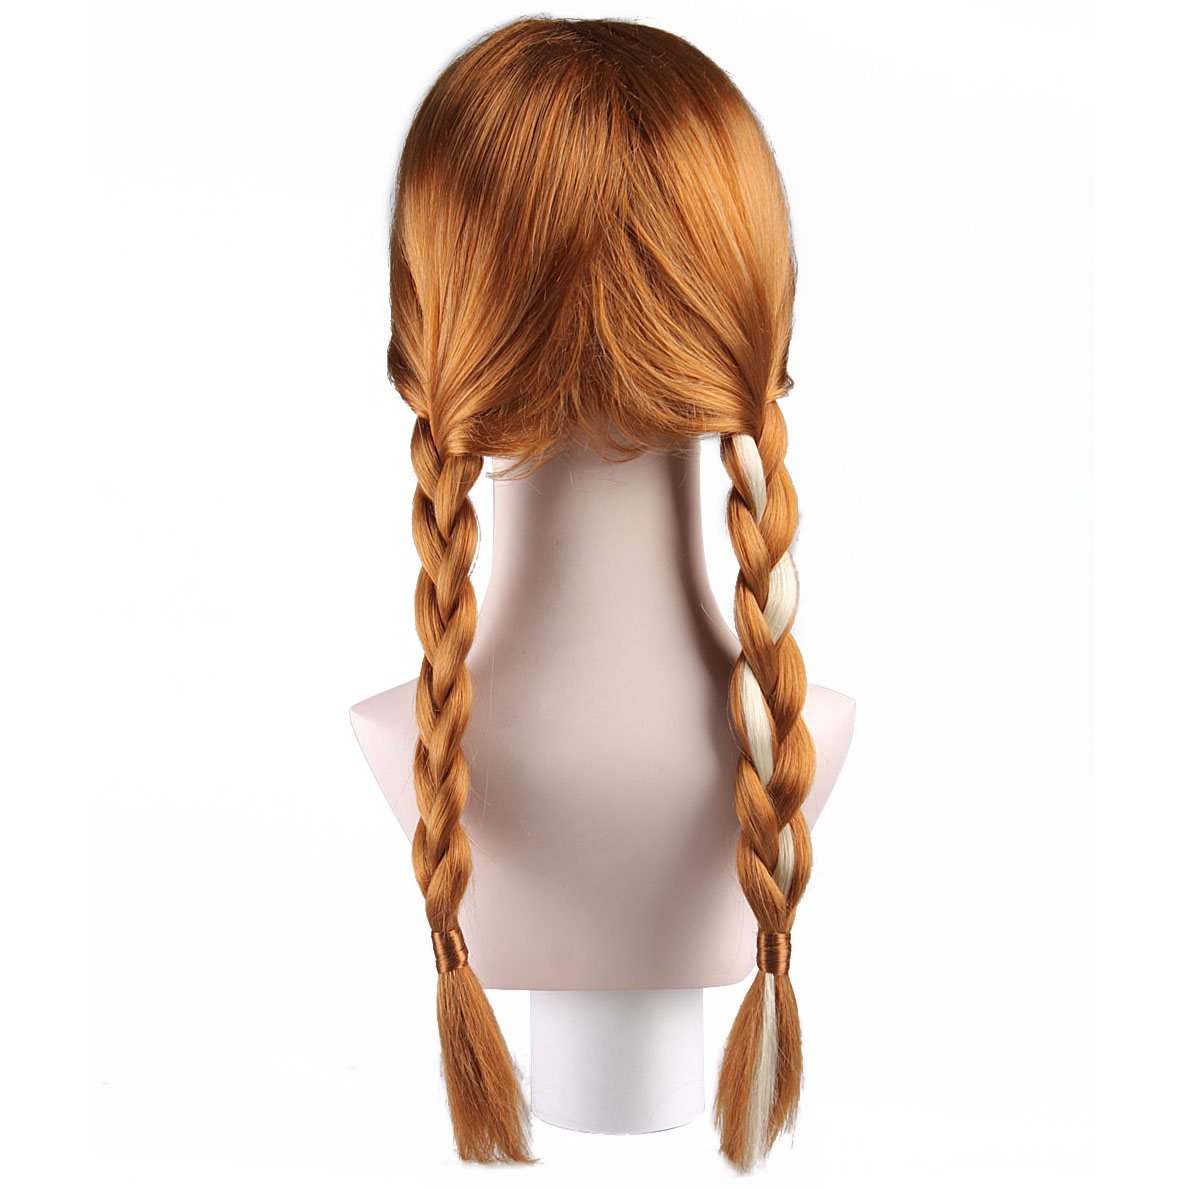 Child Strawberry-Blonde Wig Styled Two Braided Pigtails With Bangs Teen Princess Anna Synthetic Hair Comic Con Cosplay Accessory